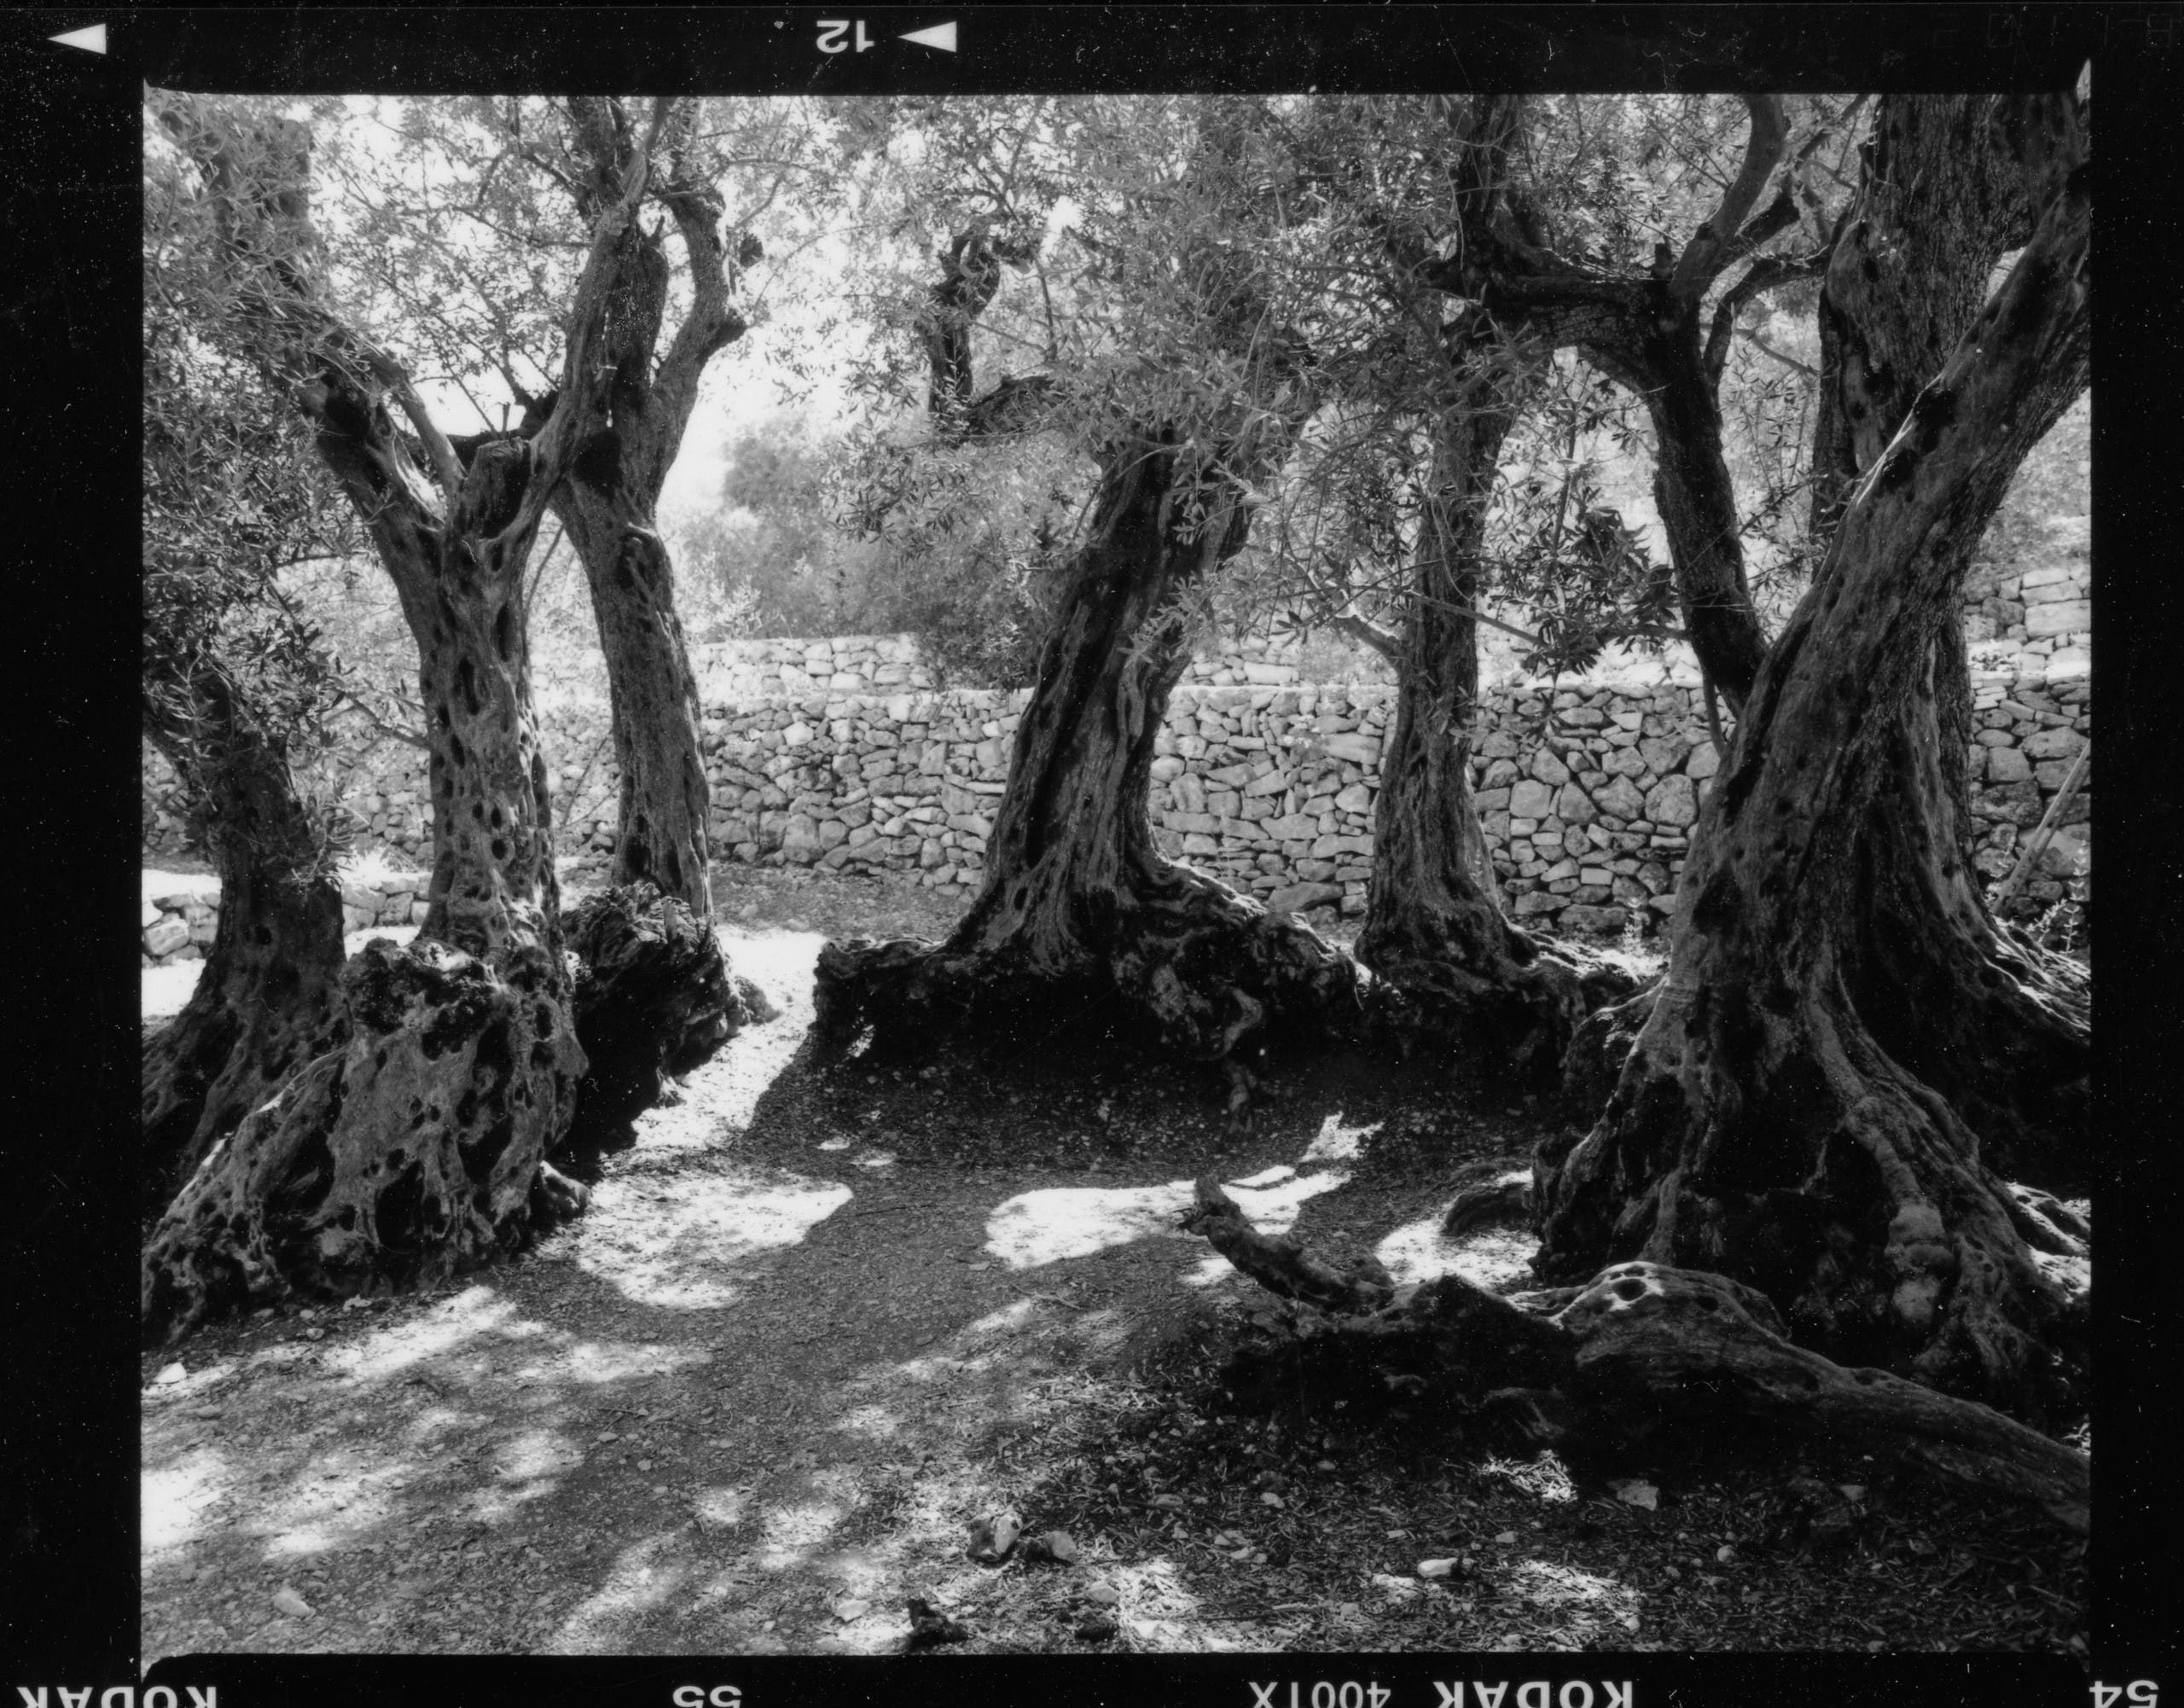 The primary focus of Warde's offering is centered on a grove of 16 millennial olive trees, located in the Lebanese village of Bchaaleh which are several thousand years old, and have served as a gathering place for residents for generations. (Image: Fouad Elkoury)